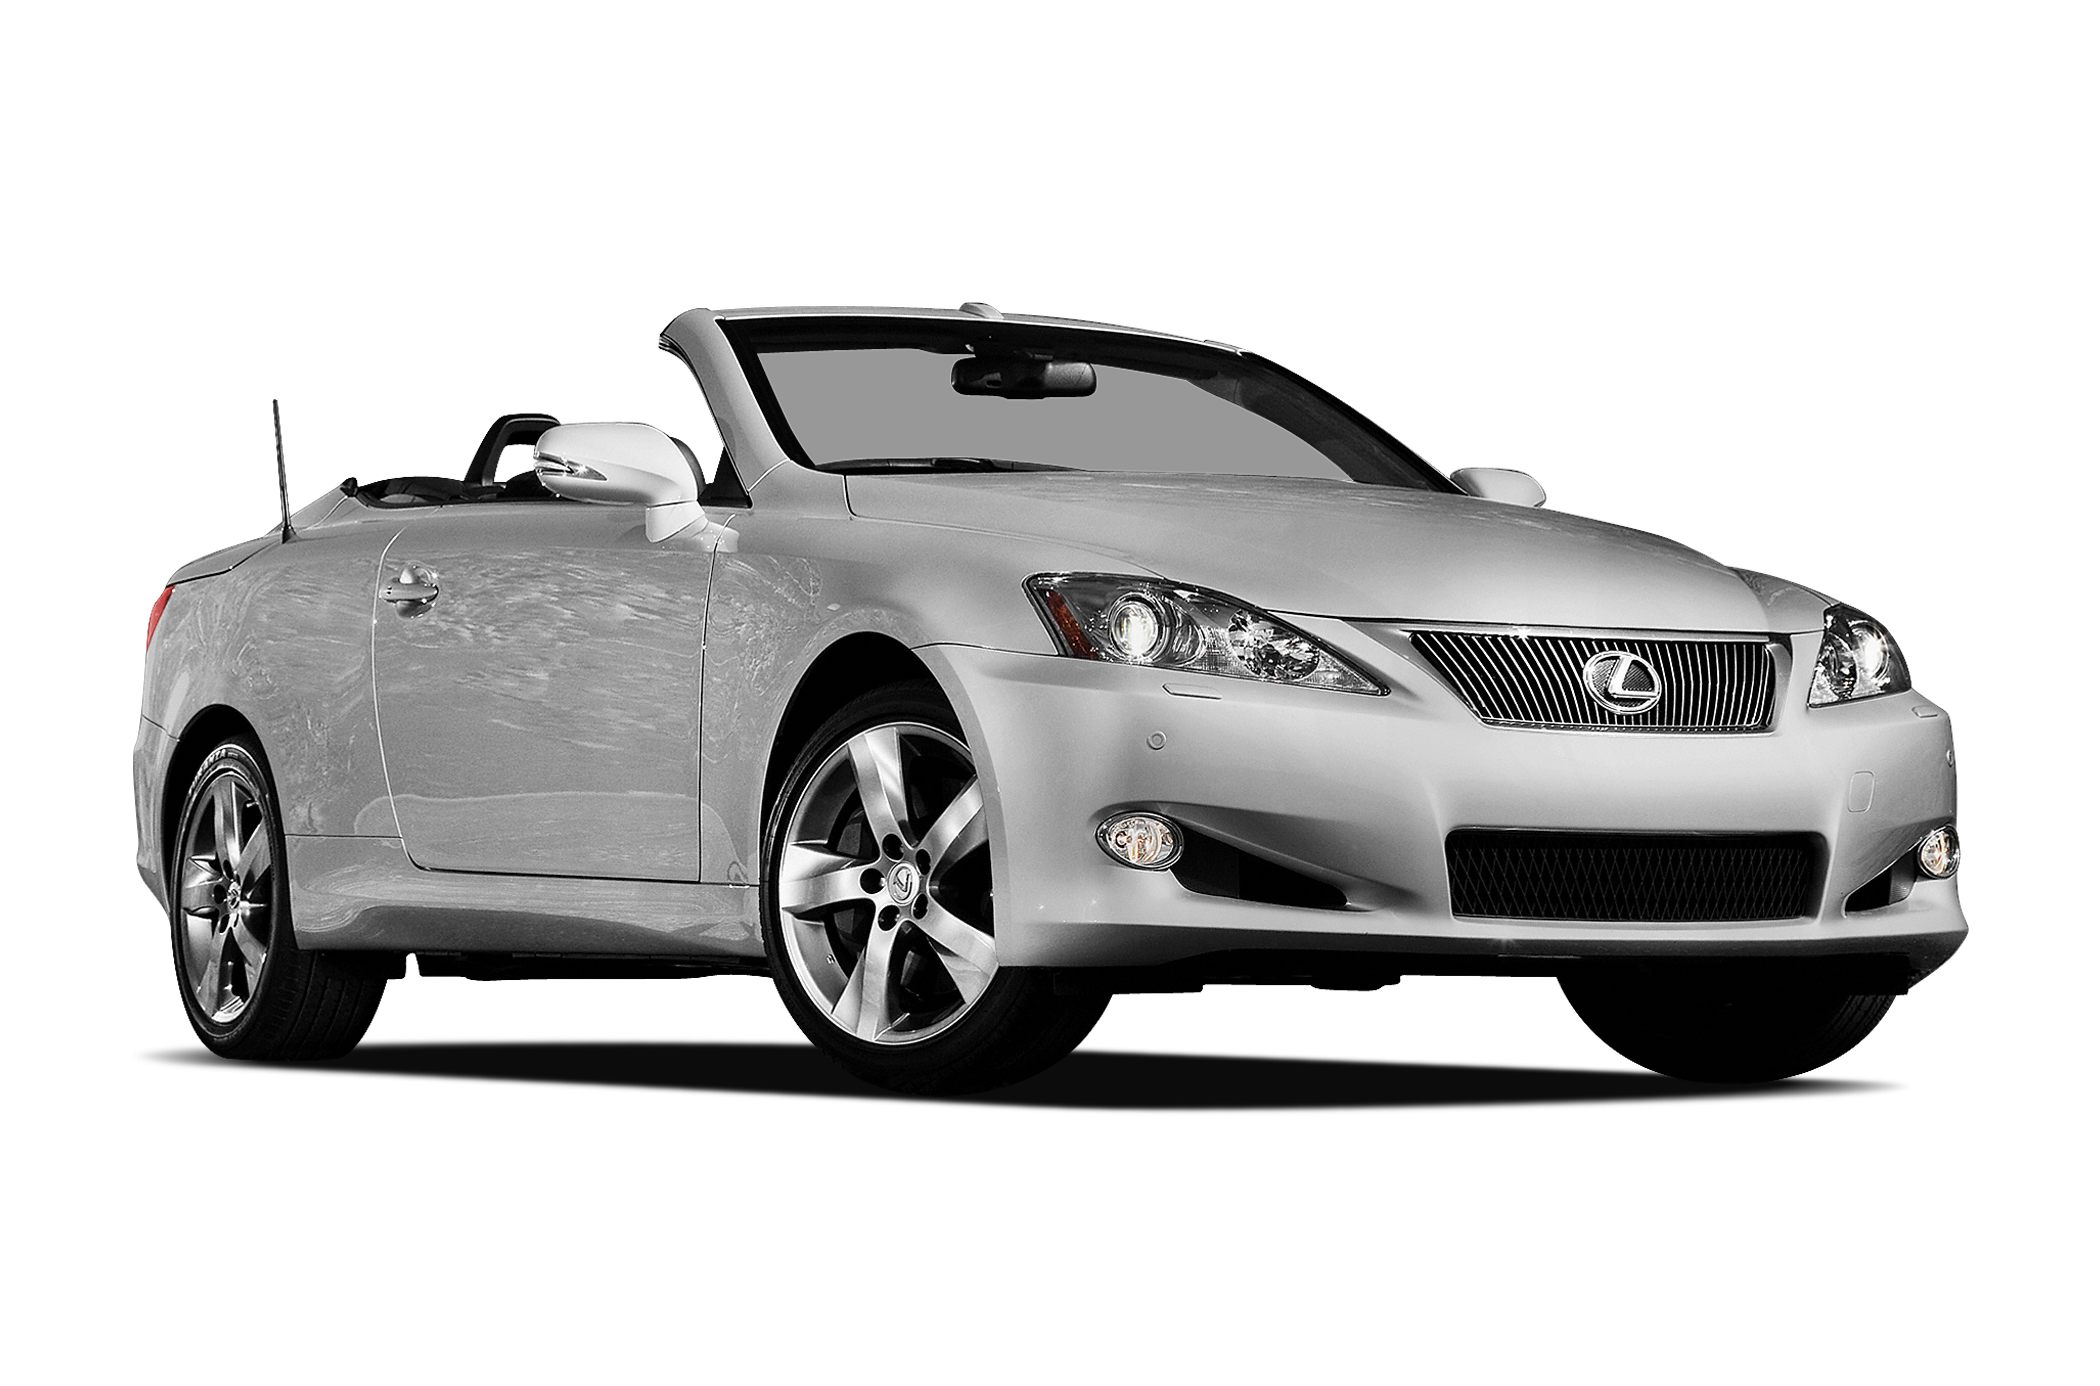 2010 Lexus IS 350C Base Prices are PLUS tax tag title fee 799 Pre-Delivery Service Fee and